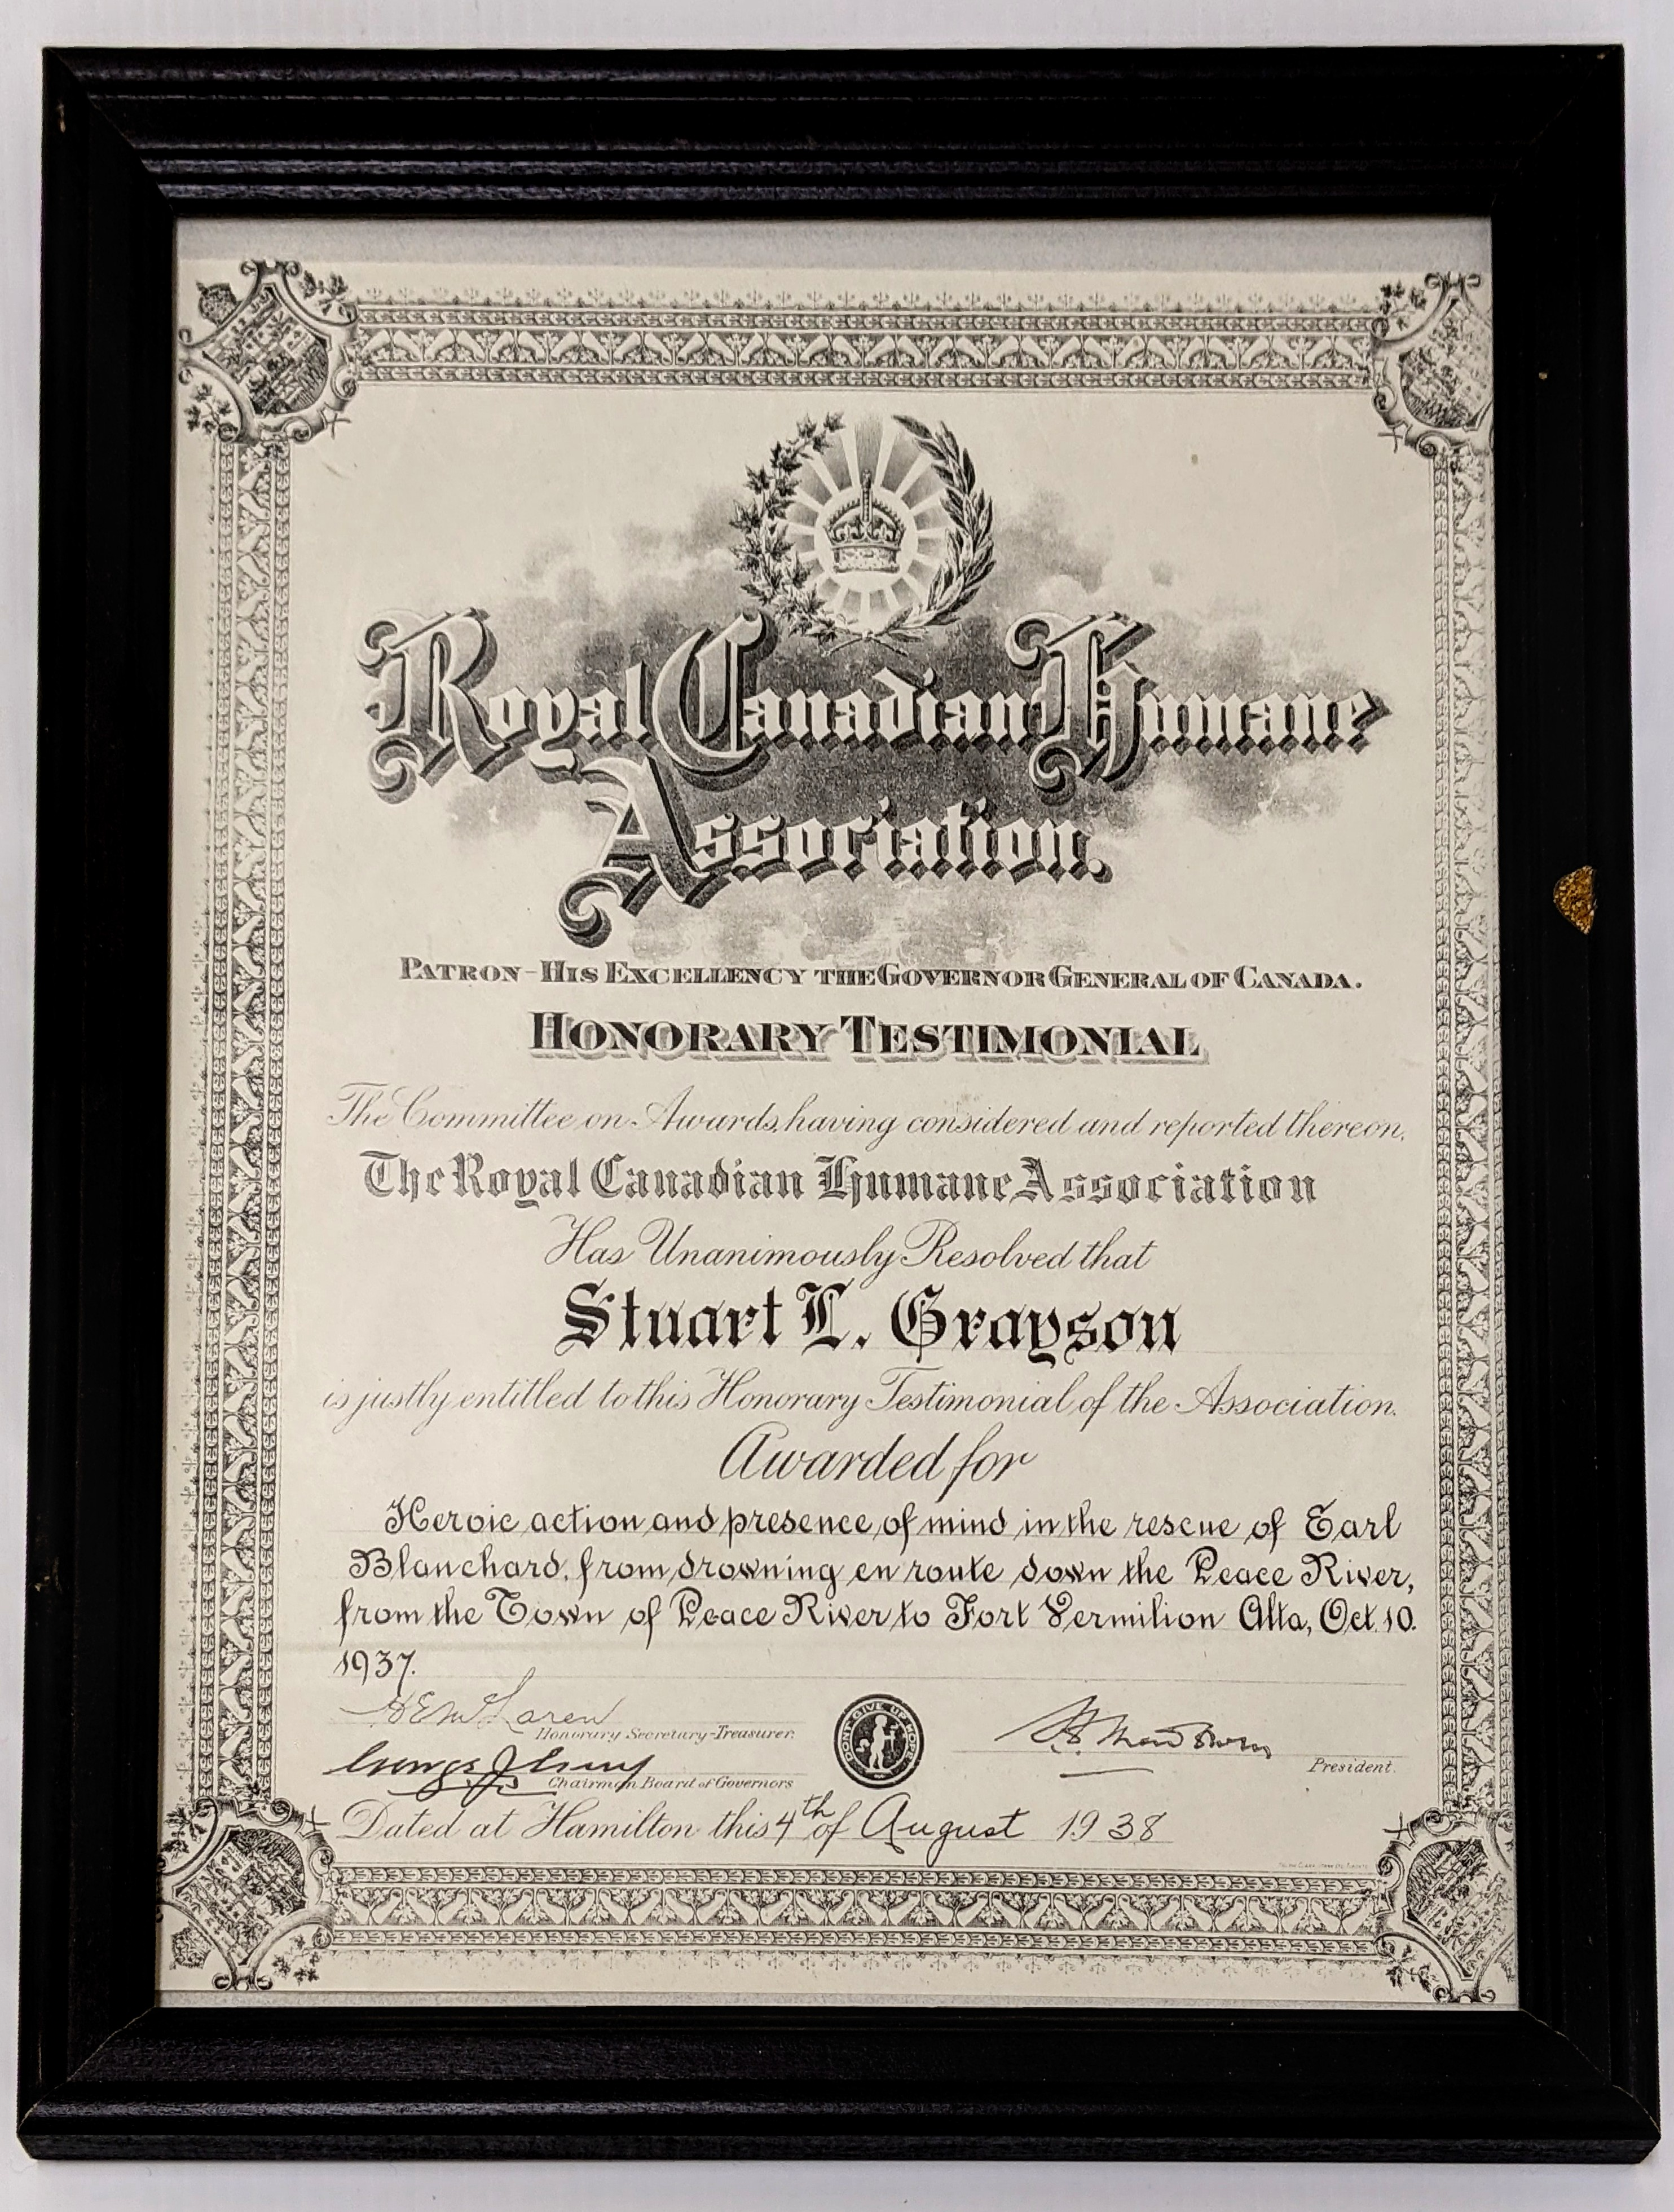 This award comes from the Royal Canadian Humane Association and is granted to Stuart Grayson. We are unsure of the entire story but Grayson was heroic in his efforts to save Earl Blanchard while travelling along the mighty Peace River.  Considering this was awarded in 1937 it is likely that the story does not involve a riverboat but is possible that there was an incident while crossing the ice. The Royal Canadian Humane Association still exists today ( its headquarters are in Edmonton!) and you can nominate individuals who have shown heroic action!  23/08/2021 2000.45.01 / Grayson, Stuart